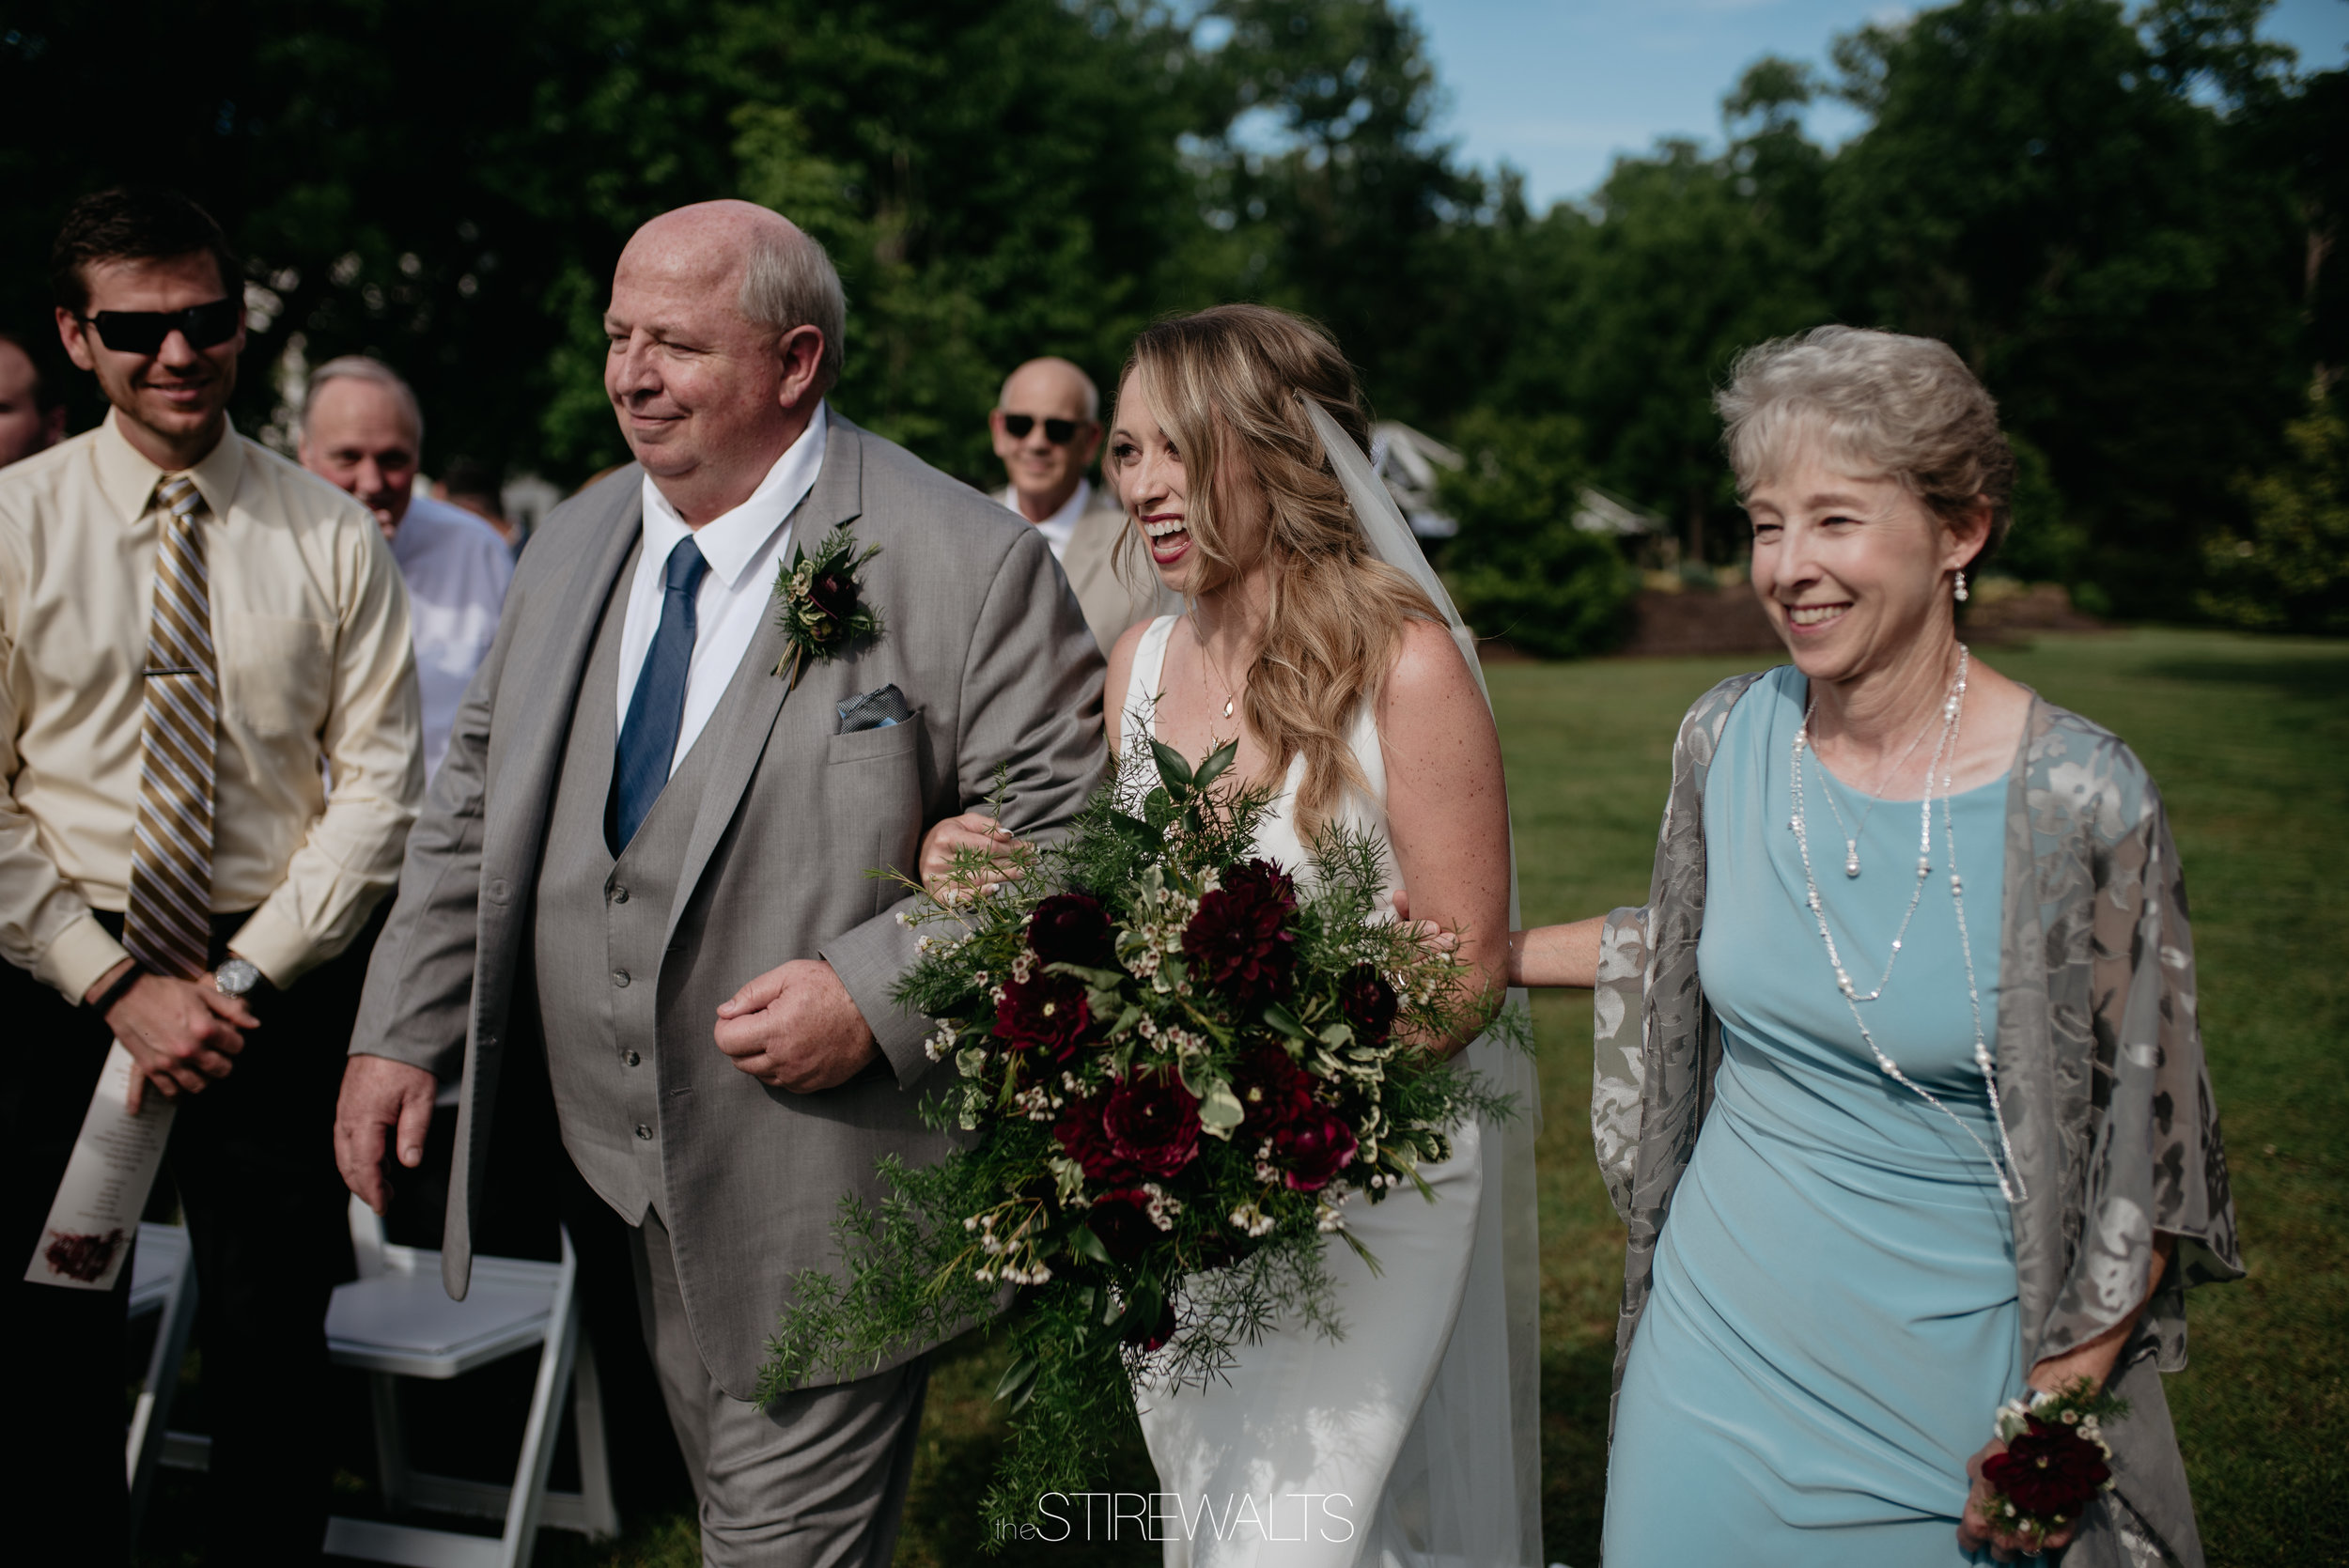 Kayla.Jay.Wedding.Blog.2018.©TheStirewalts-85.jpg